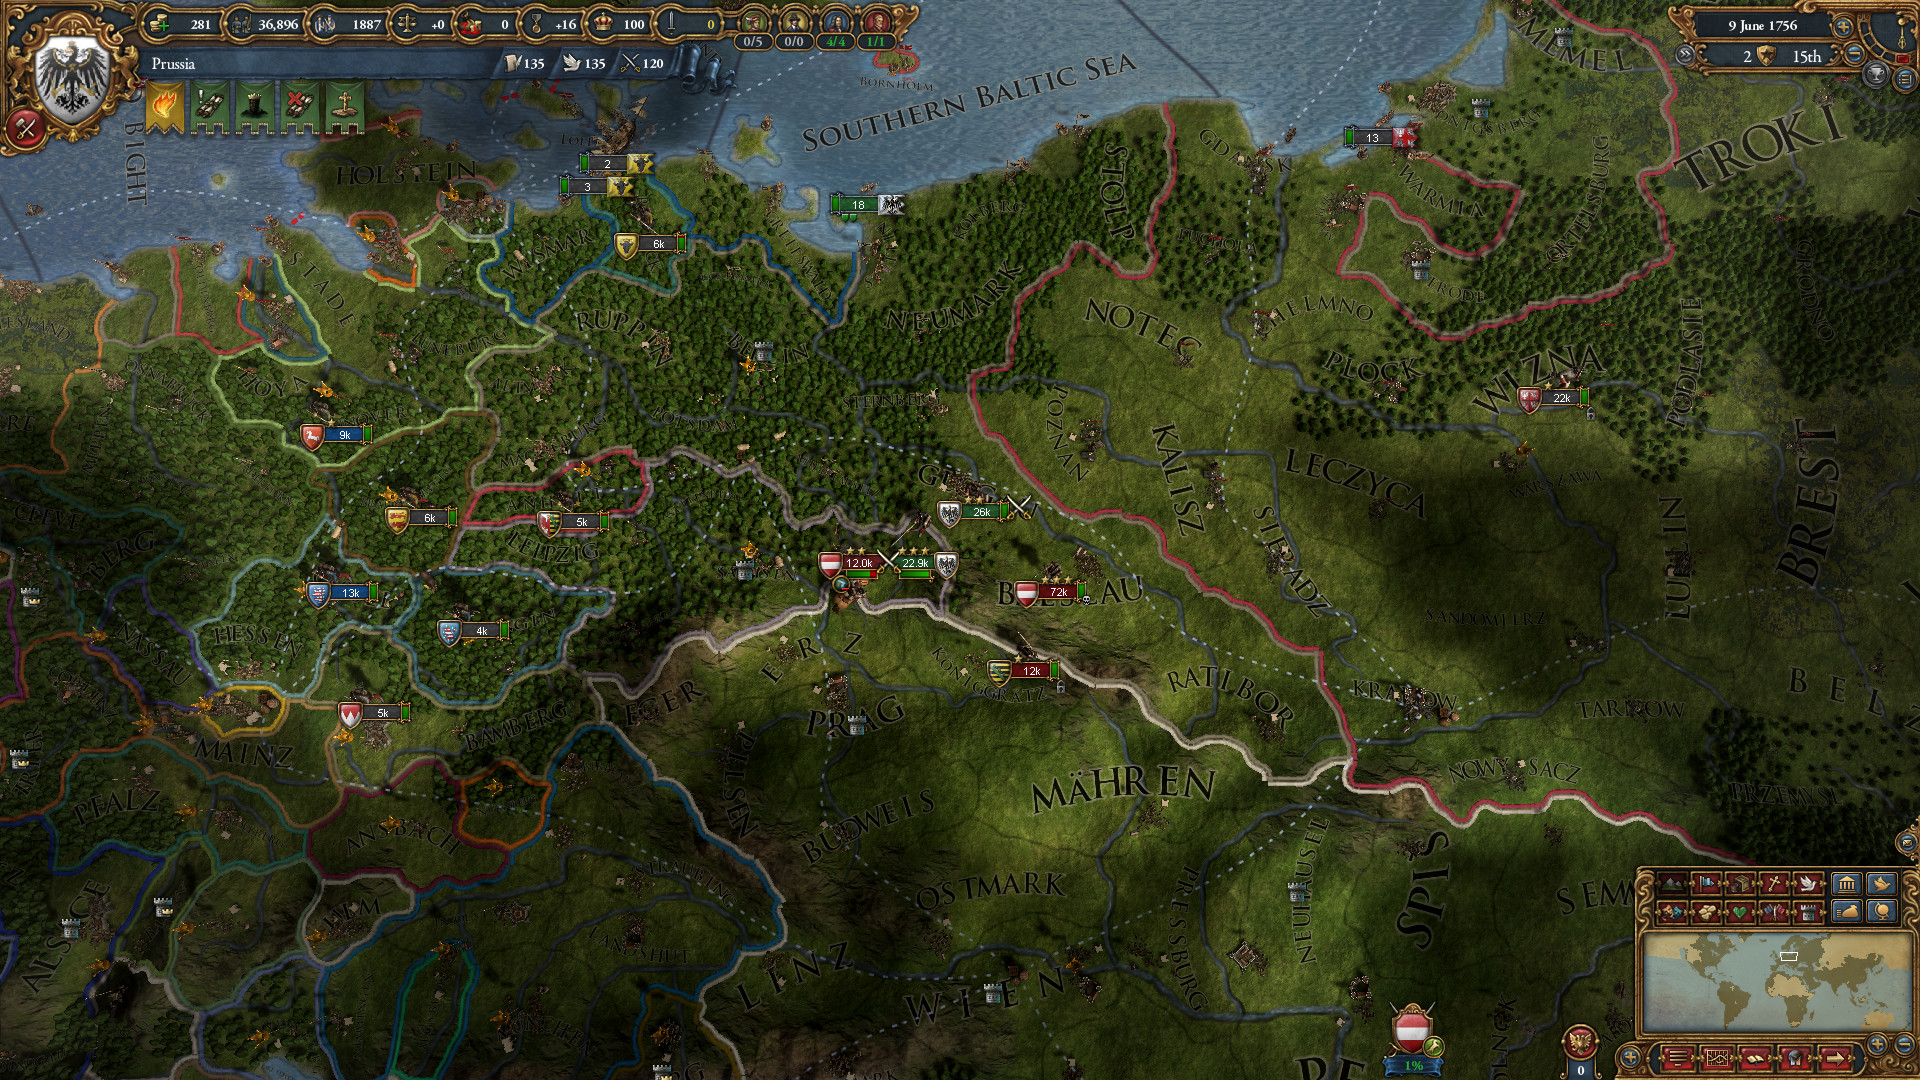 Europa universalis iv on steam gumiabroncs Image collections